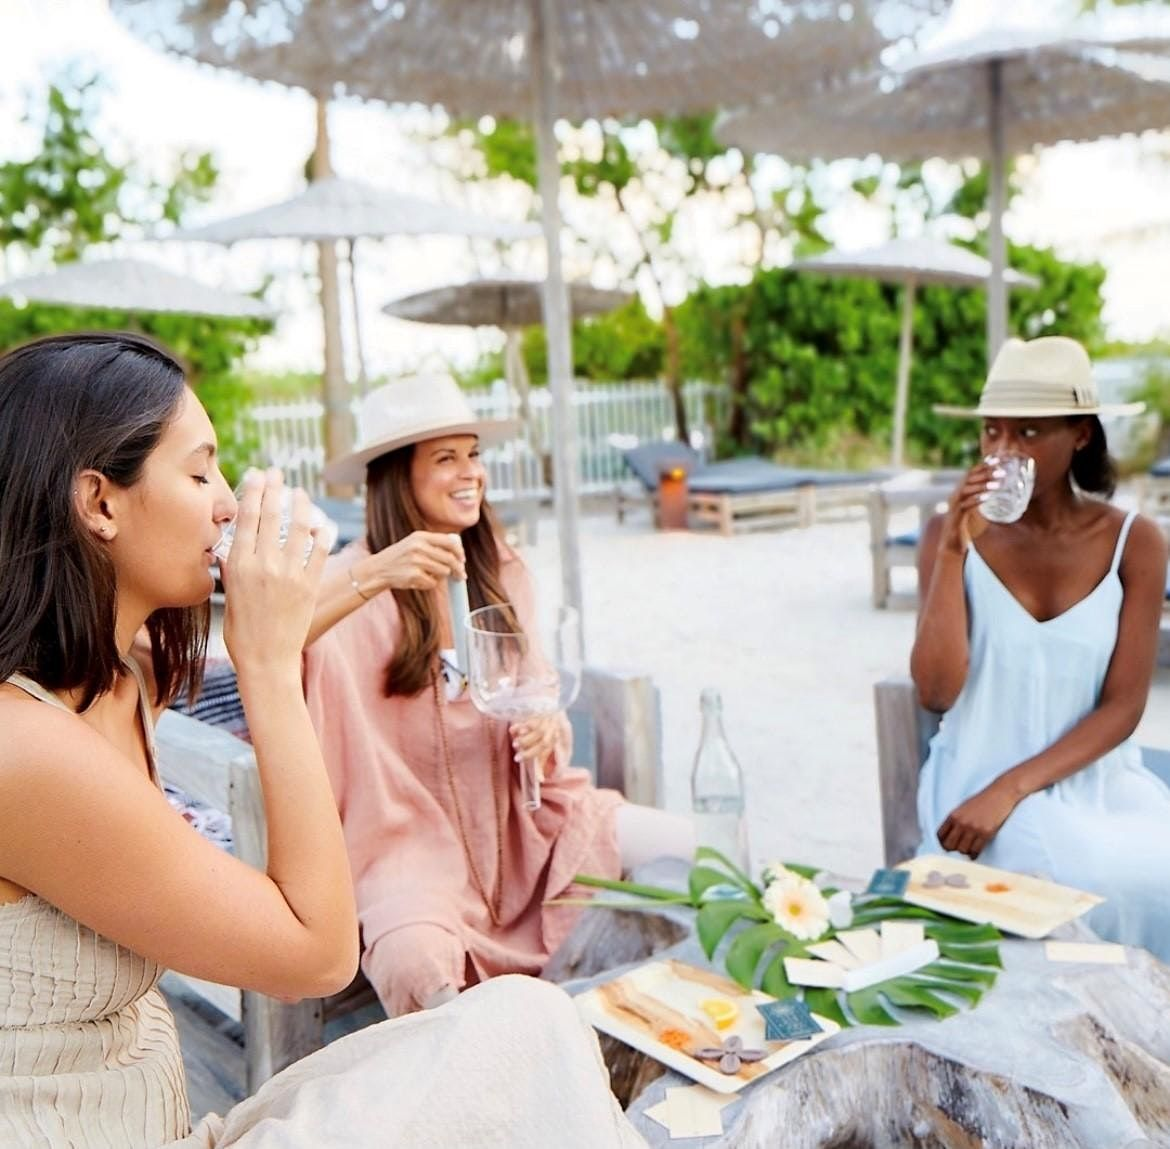 National Tequila Day: Mindful Tasting Ritual with Casamigos at 1 Beach Club